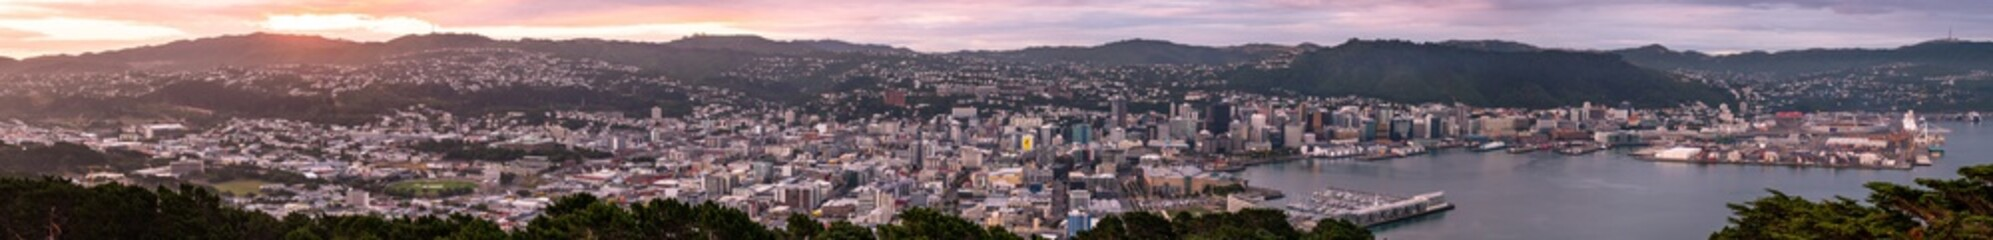 2018, JAN 1 - Wellington, New Zealand, The panorama landscape view of the building and scenery of the city at sunset.